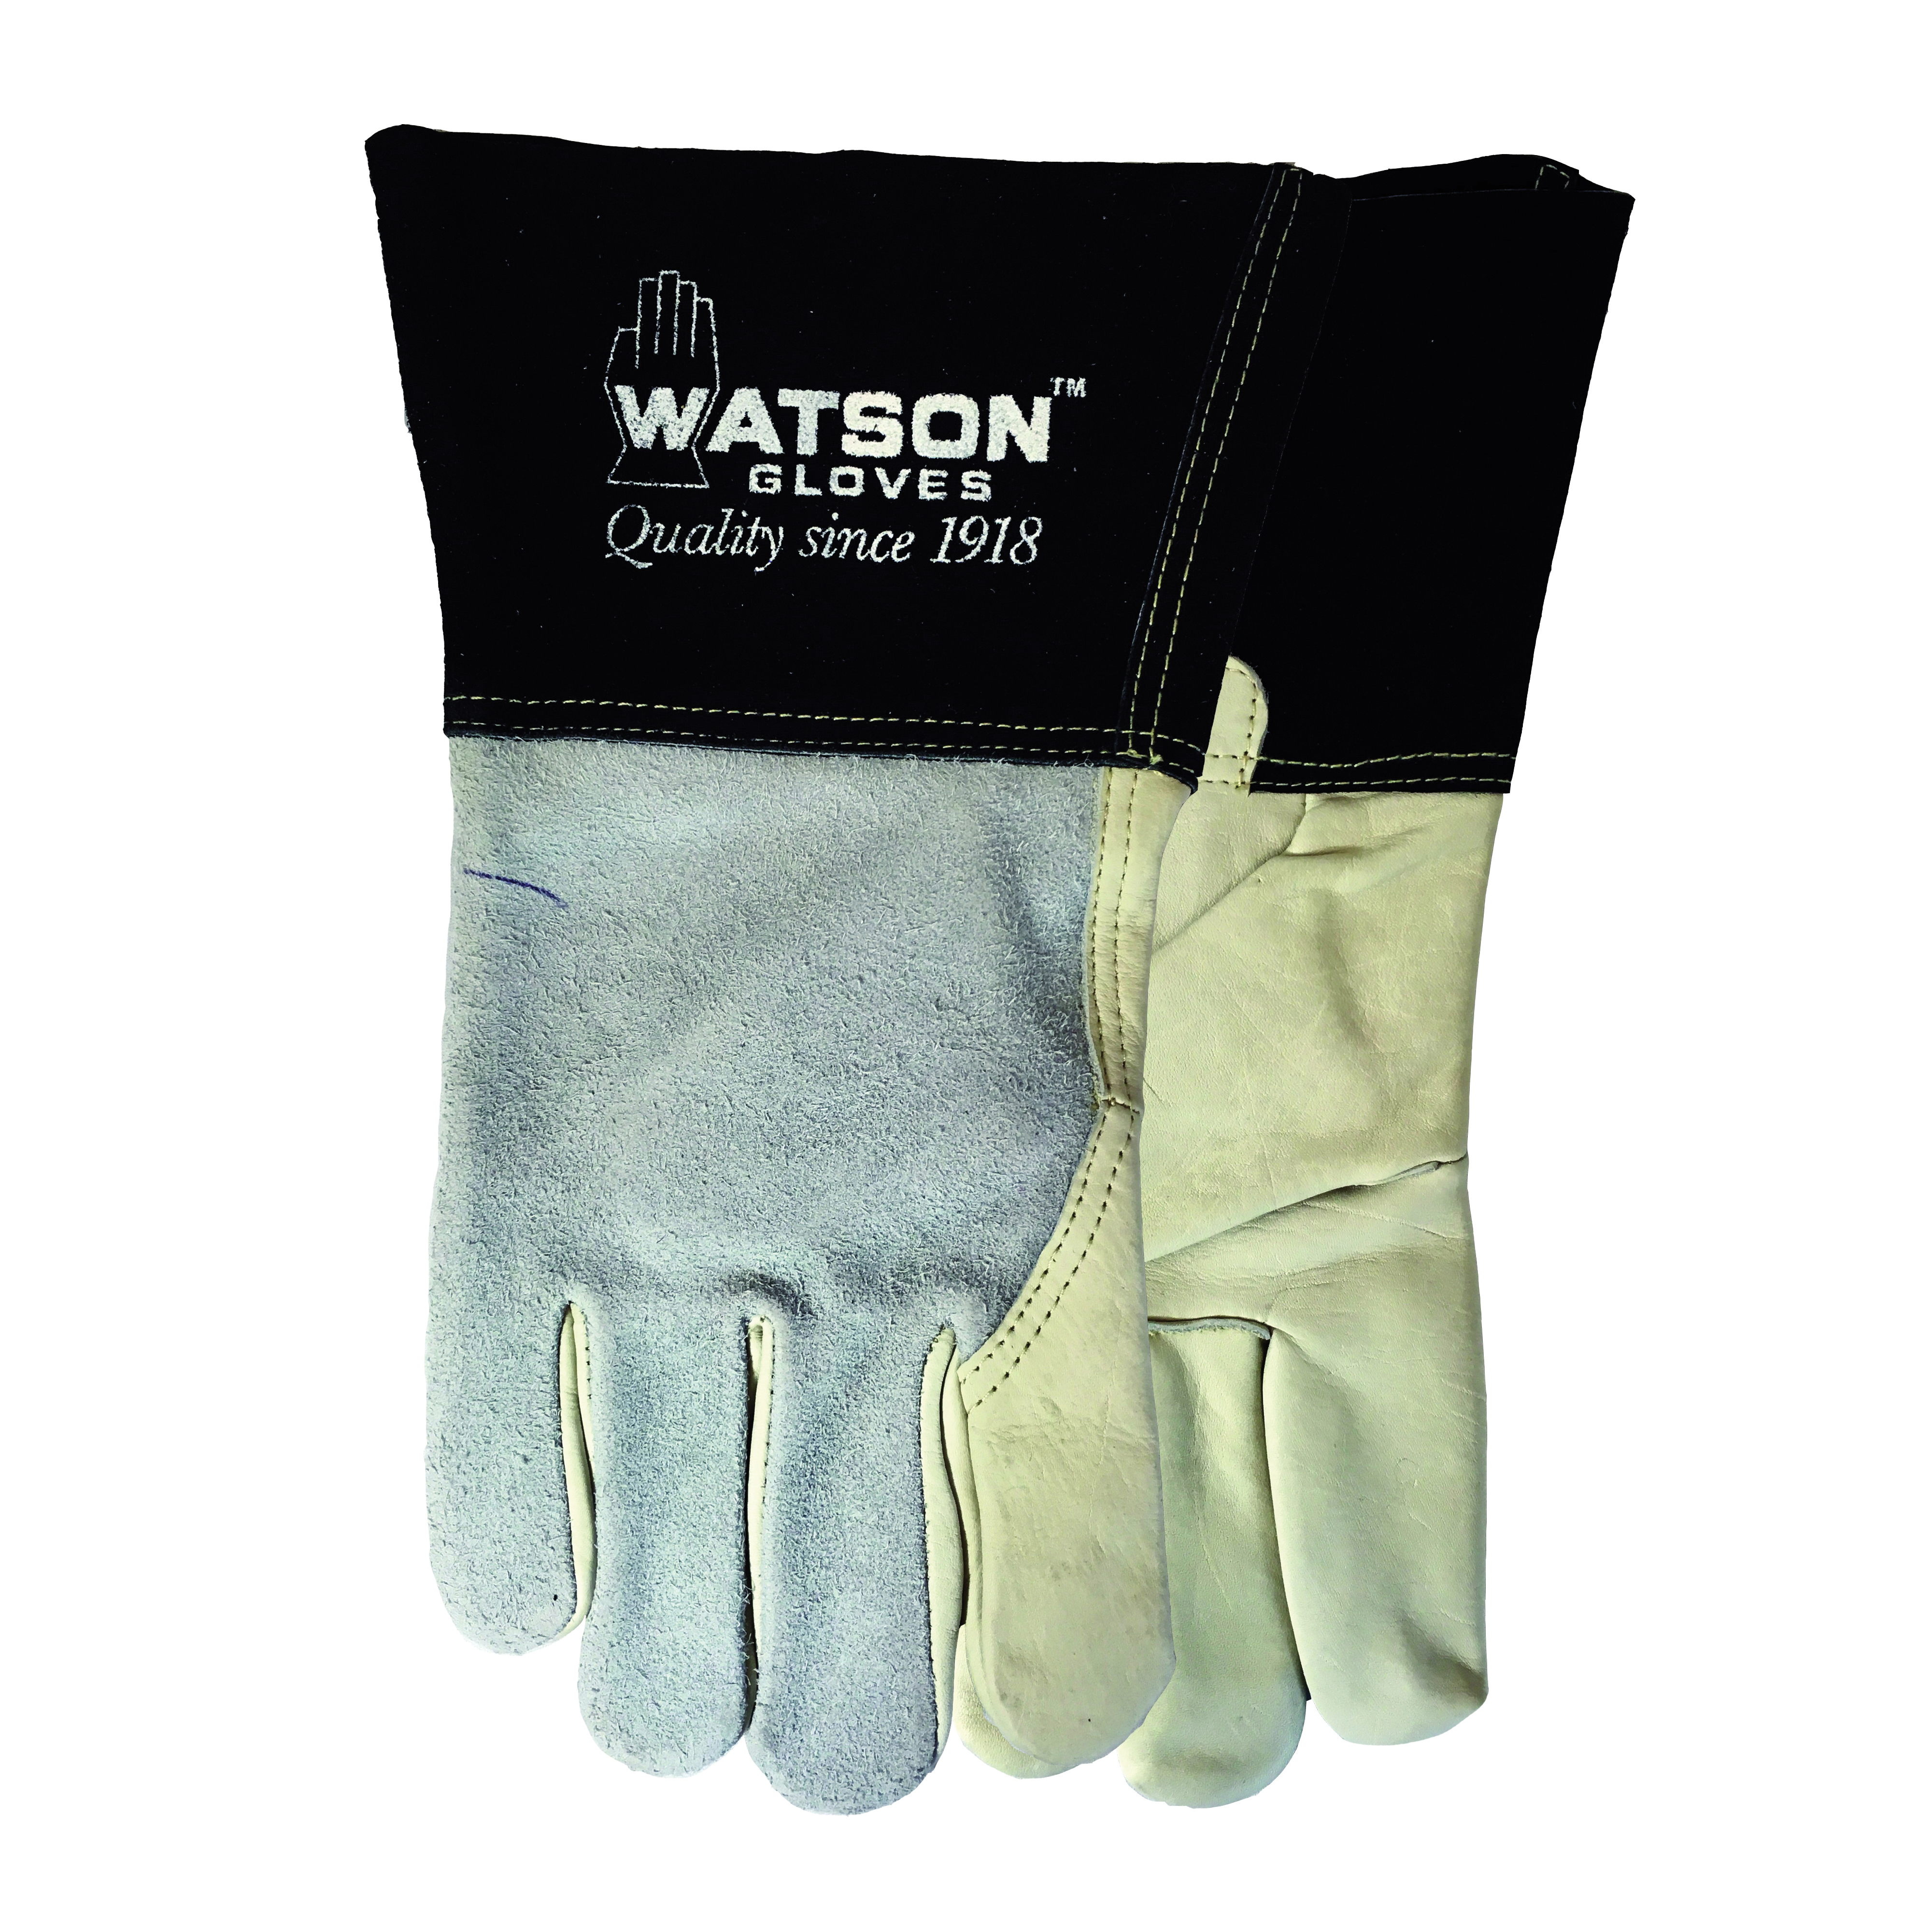 Watson 2757-M Fabulous Fabricator 2757 Welding Gloves, M, Split Cowhide Leather, Gray, Cotton/Fleece Lining, Gauntlet Cuff, 14 in L